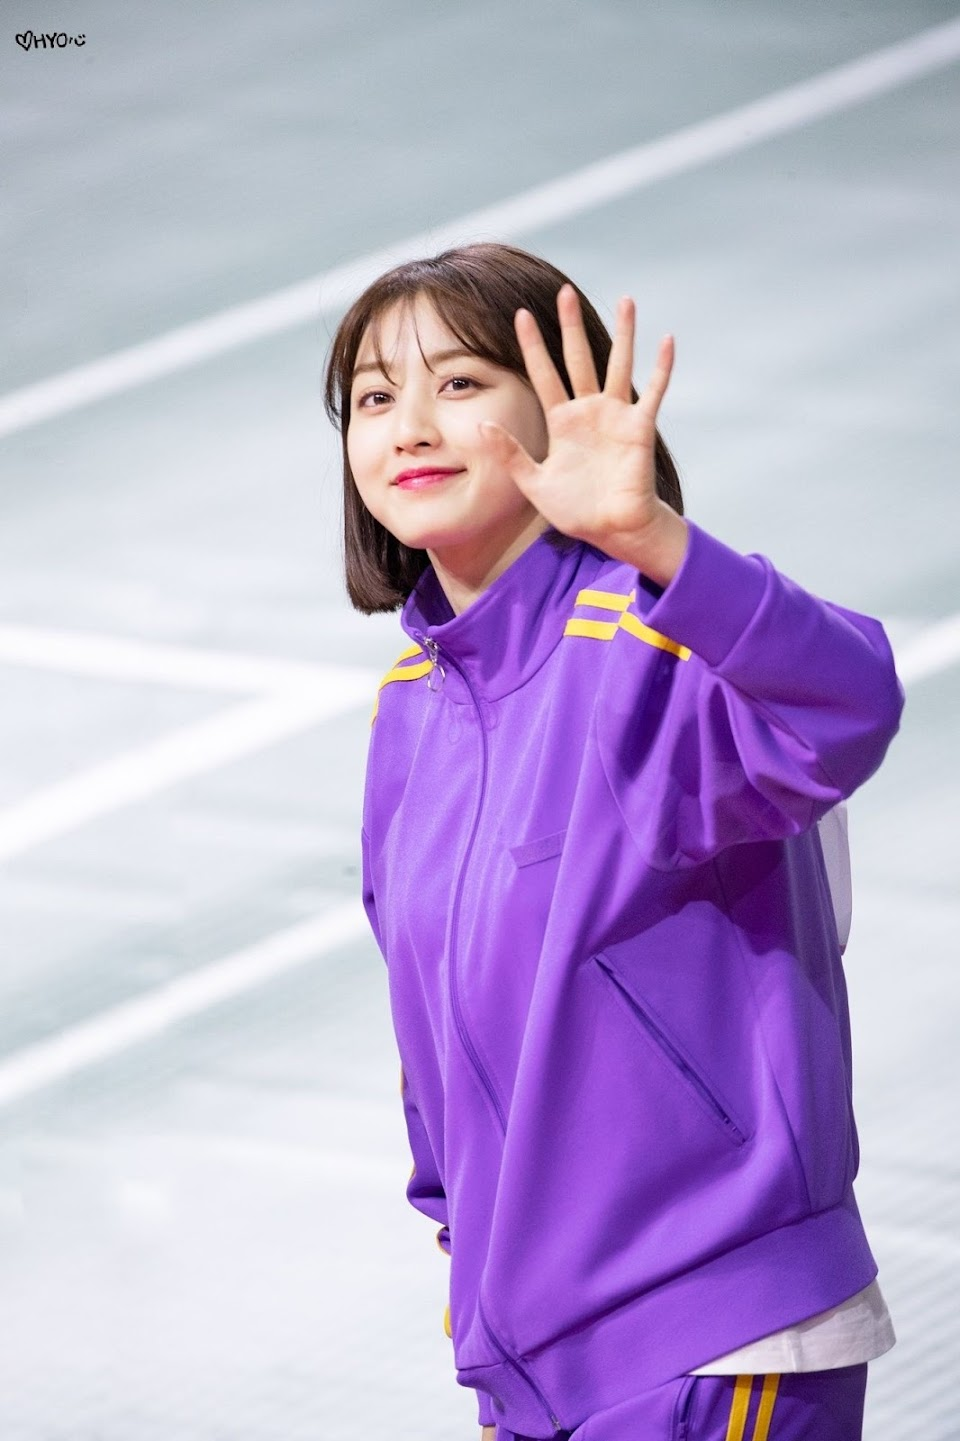 jihyocolors_purple3